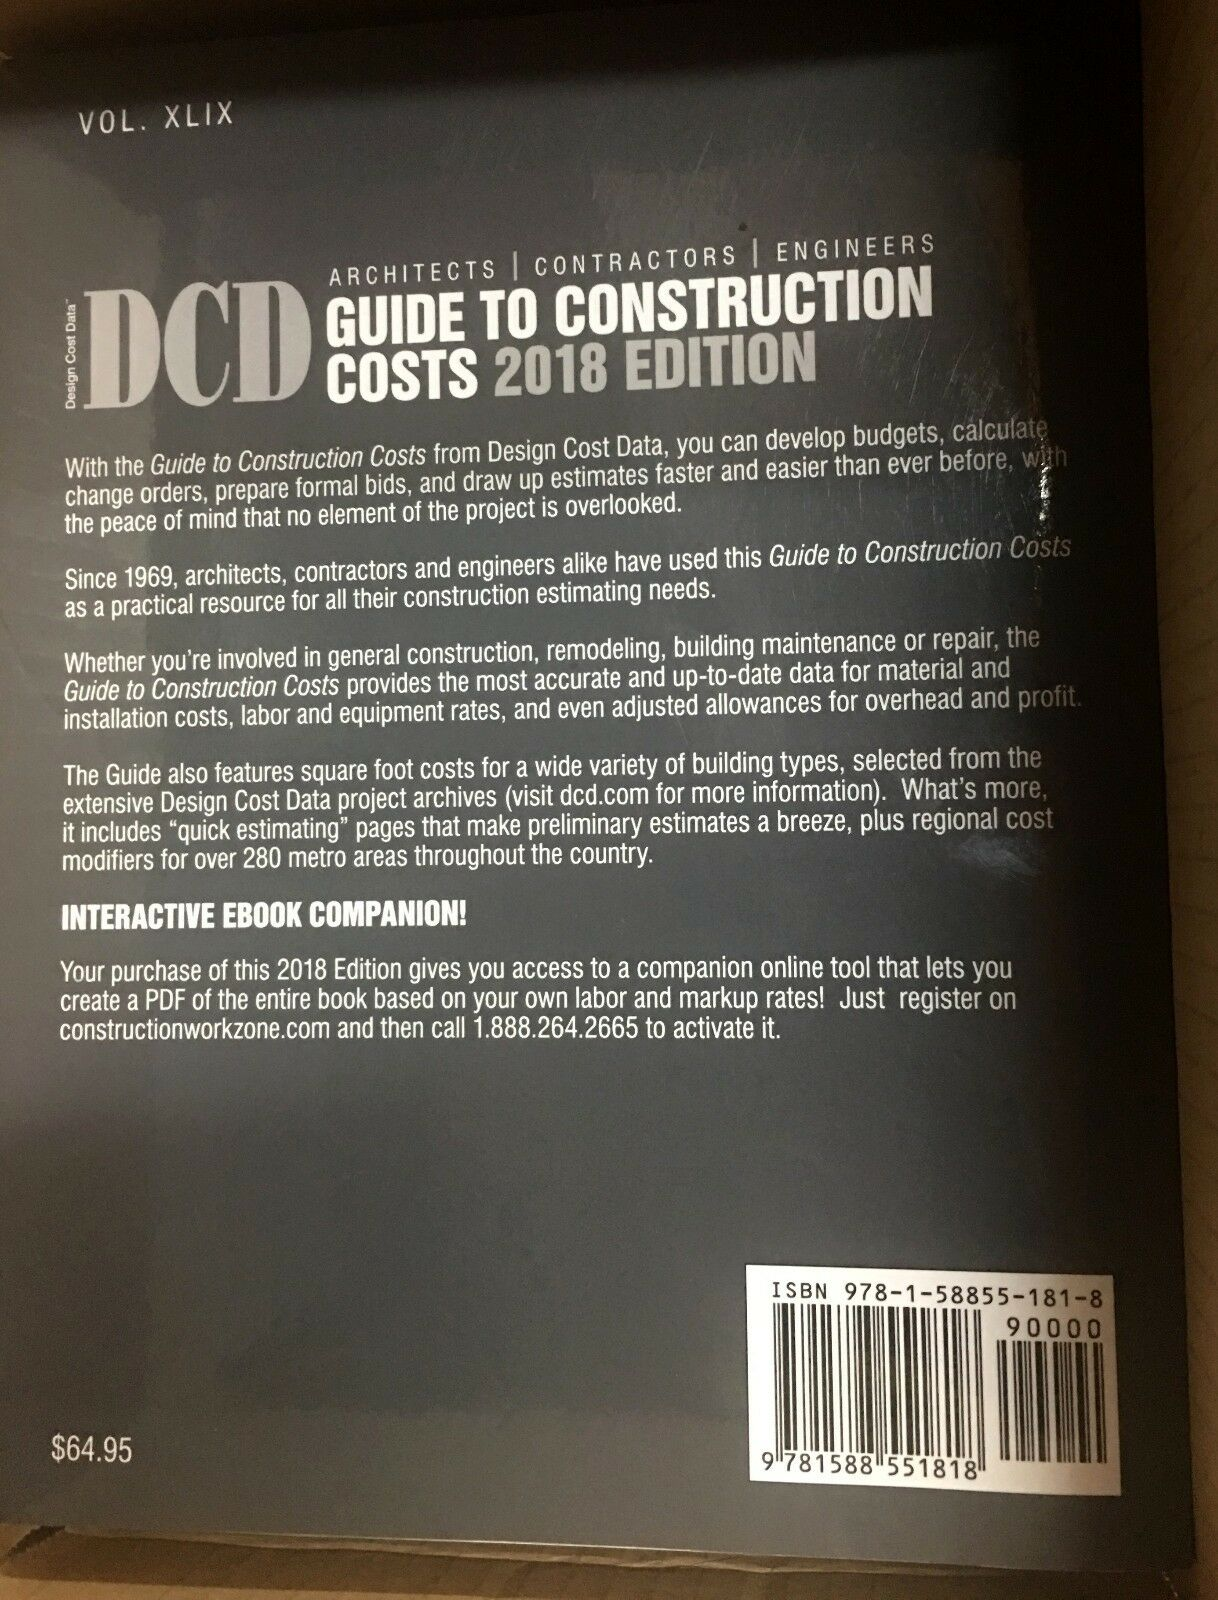 architects contractors engineers guide to construction costs by ace rh ebay com guide to construction costs dcd 2018 digital means guide to construction costs